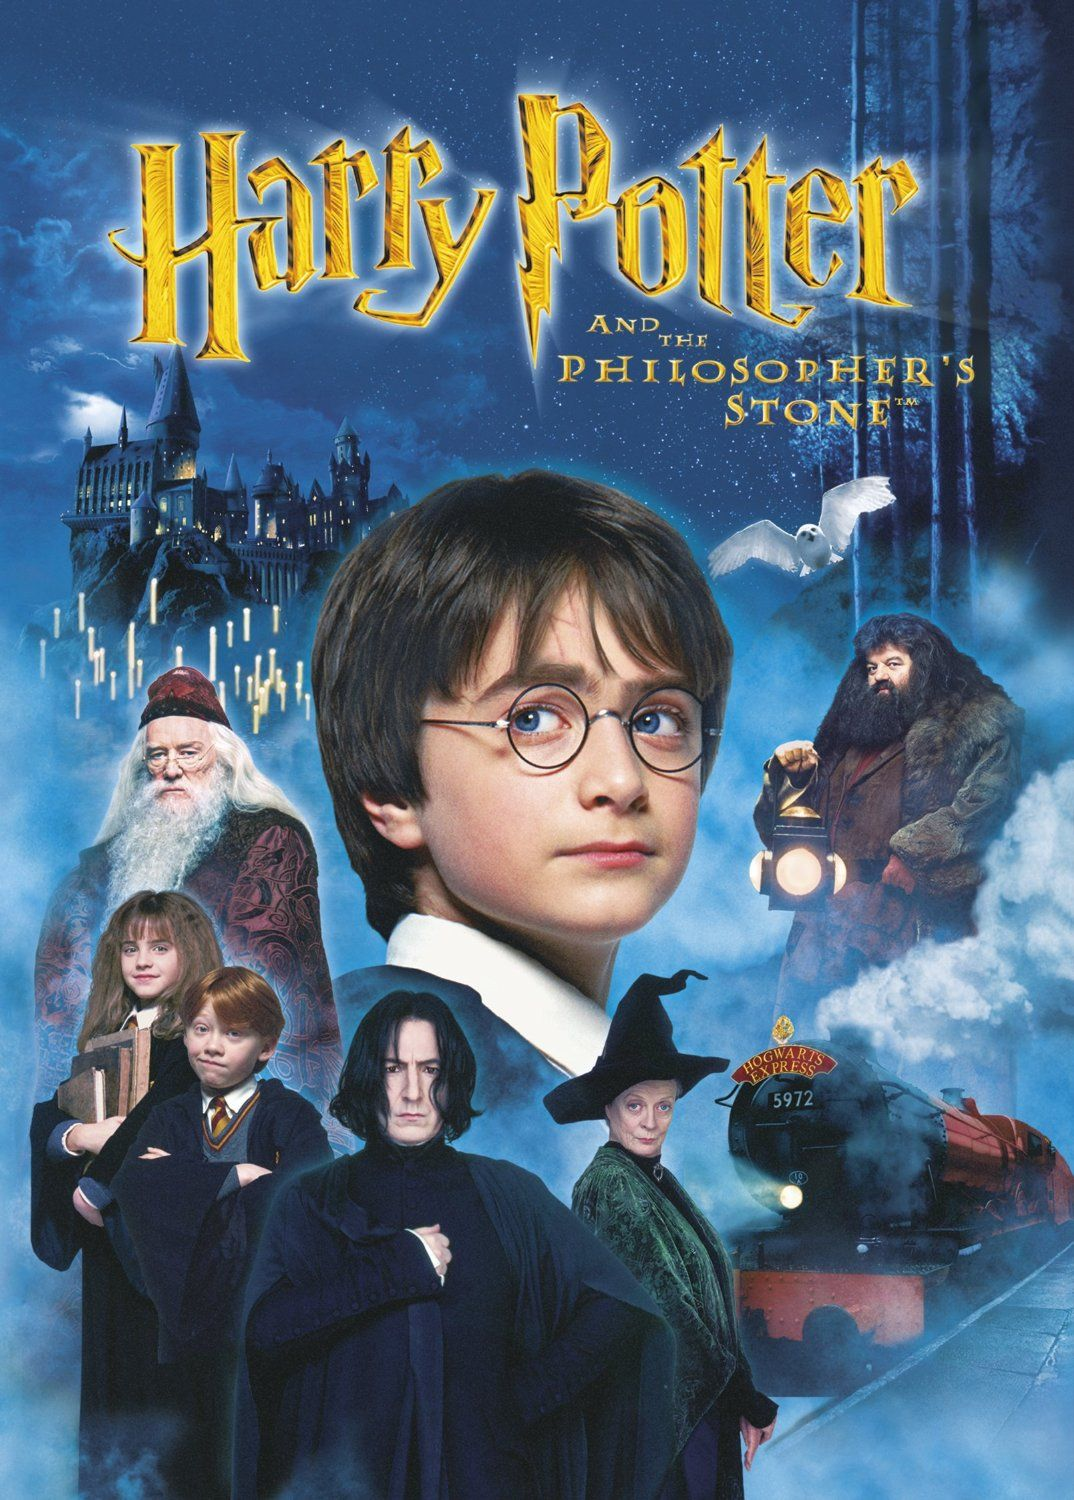 Harry Potter And The Philosopher S Stone Dvd 2001 Amazon Co Uk Daniel Radcliffe John Hurt Warwick Da Harry Potter Dvd Harry Potter Movies Harry Potter Film